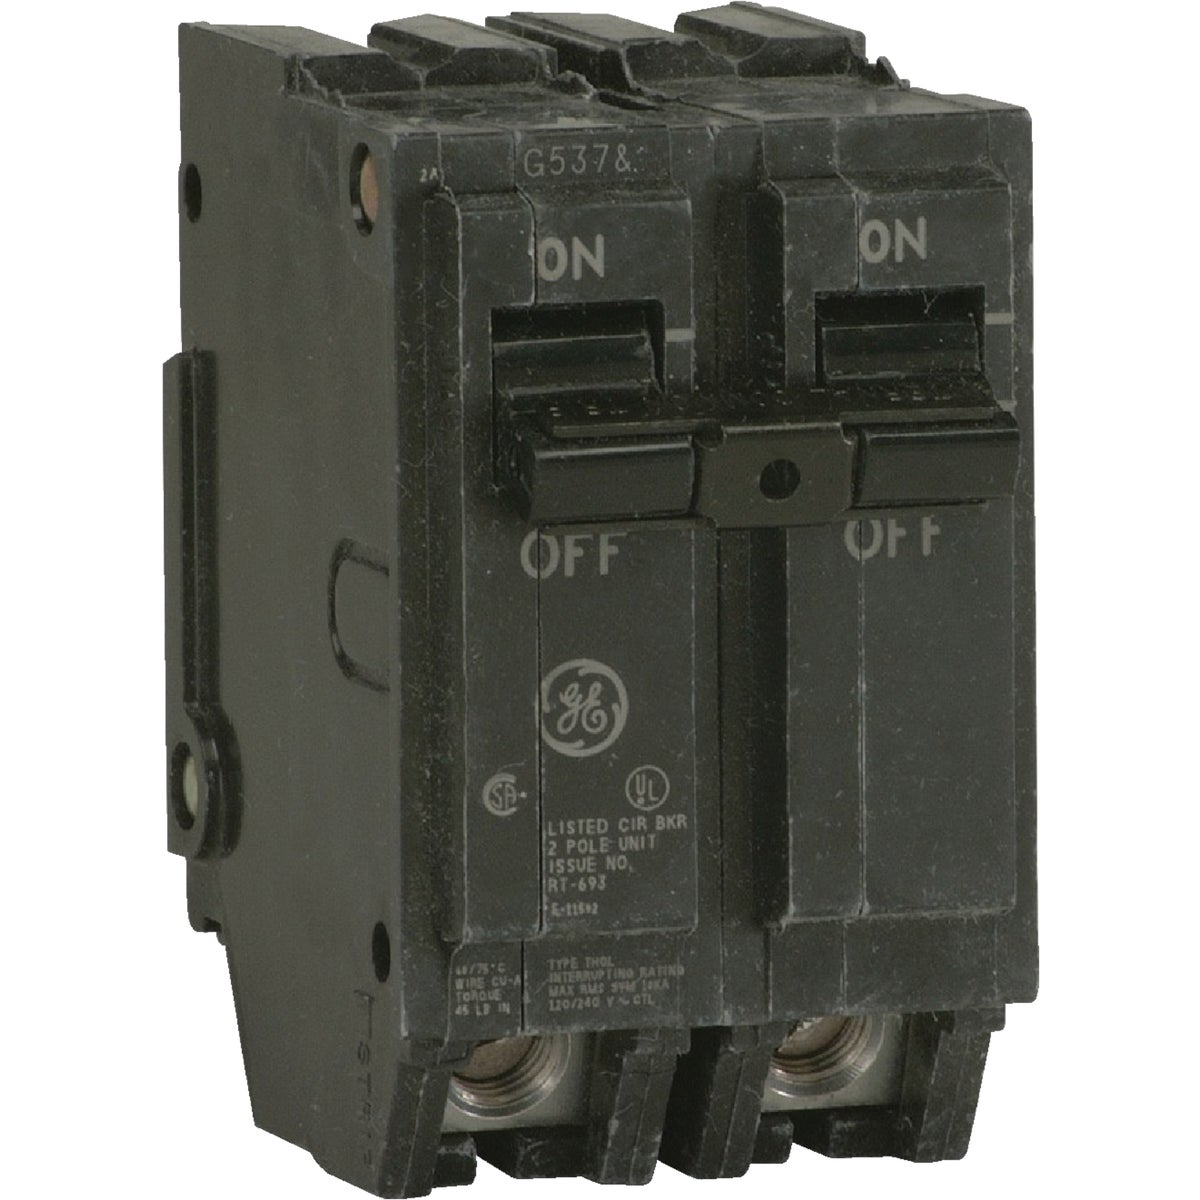 20A 2P CIRCUIT BREAKER - THQL2120 by G E Industrial